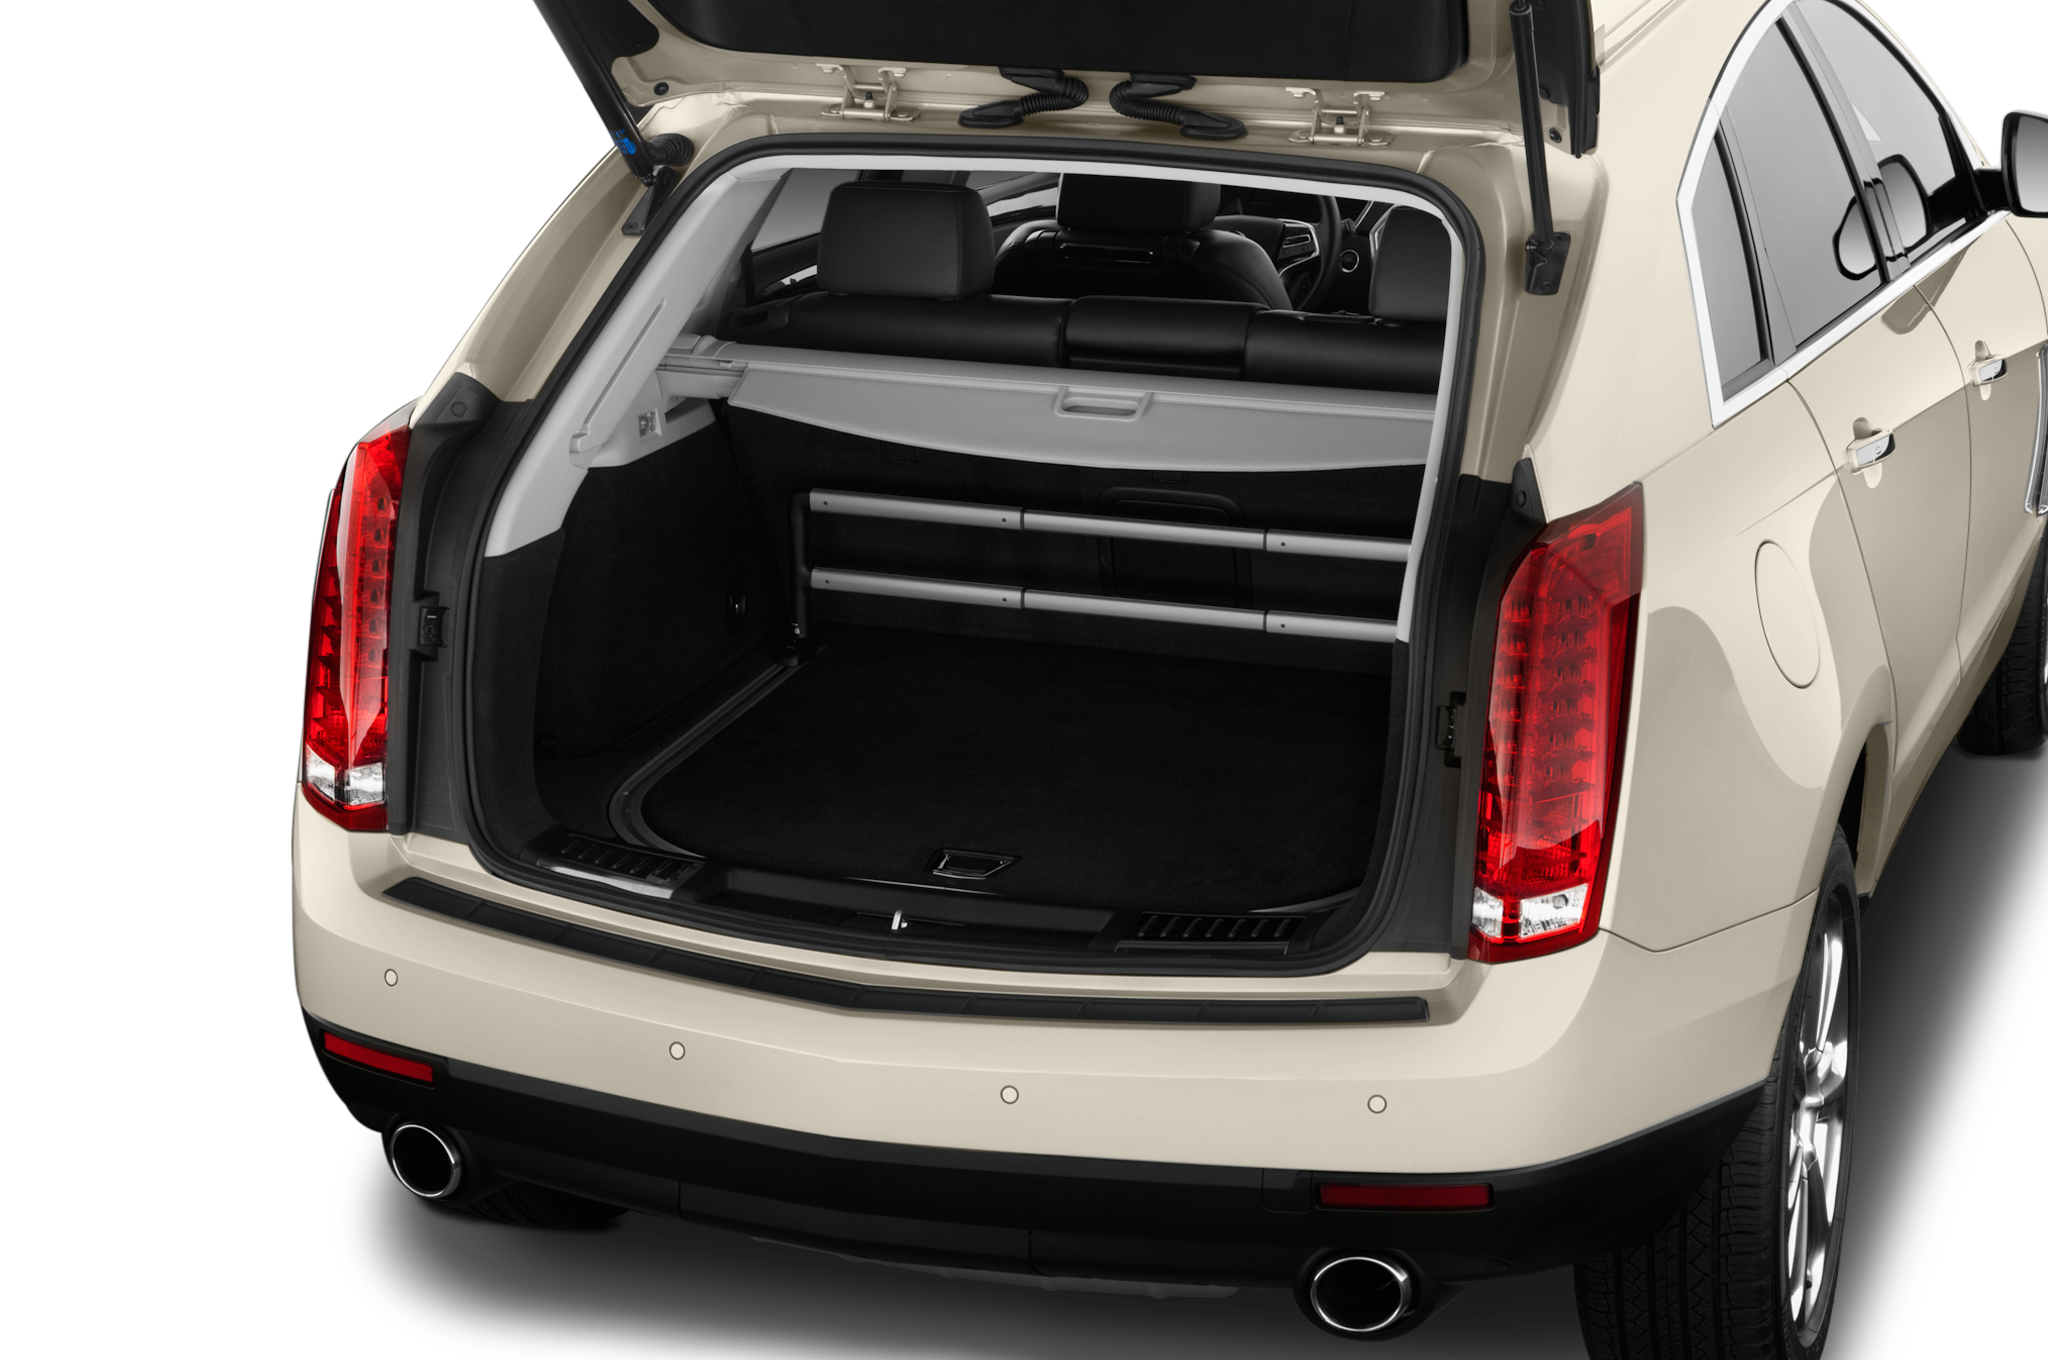 Accessories For Cadillac Srx 2017 - Best Accessories 2017